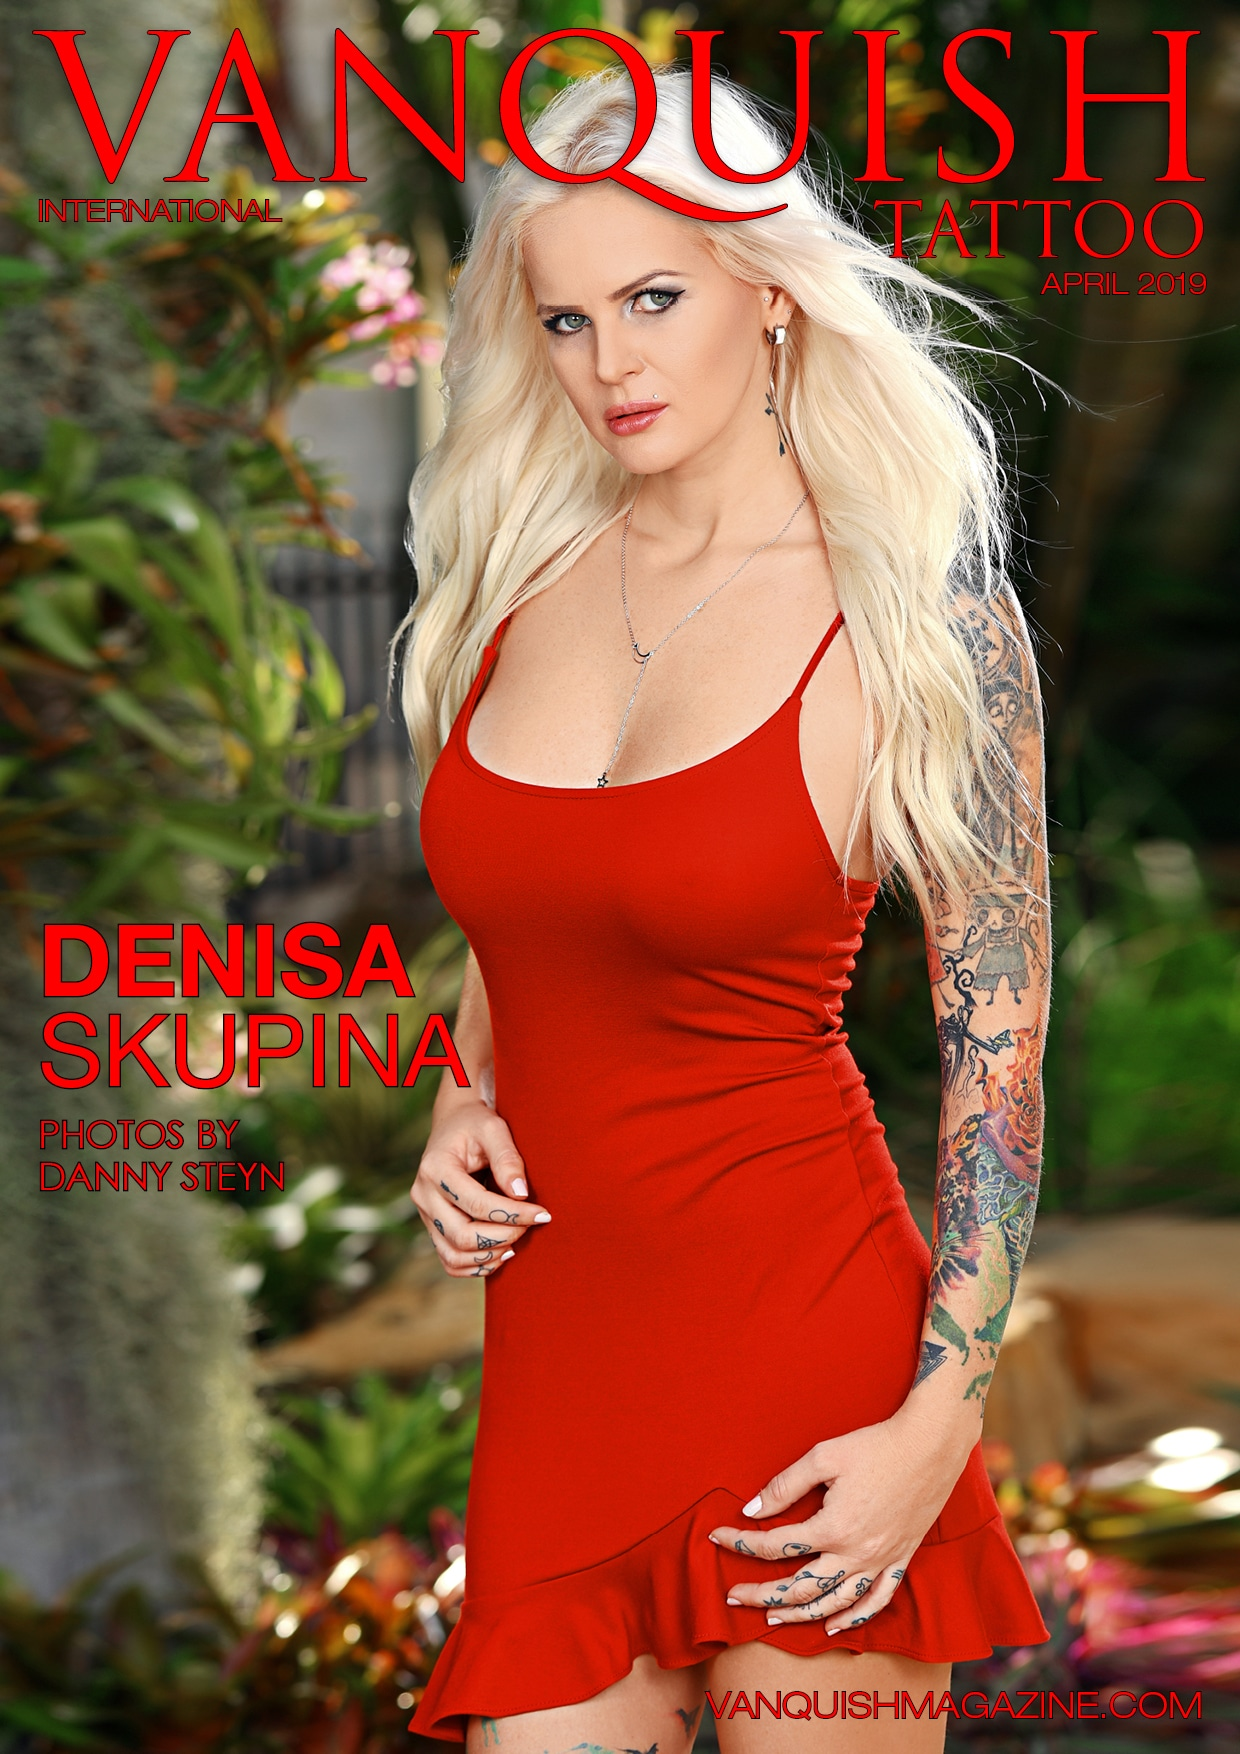 Vanquish Tattoo – April 2019 – Denisa Skupina